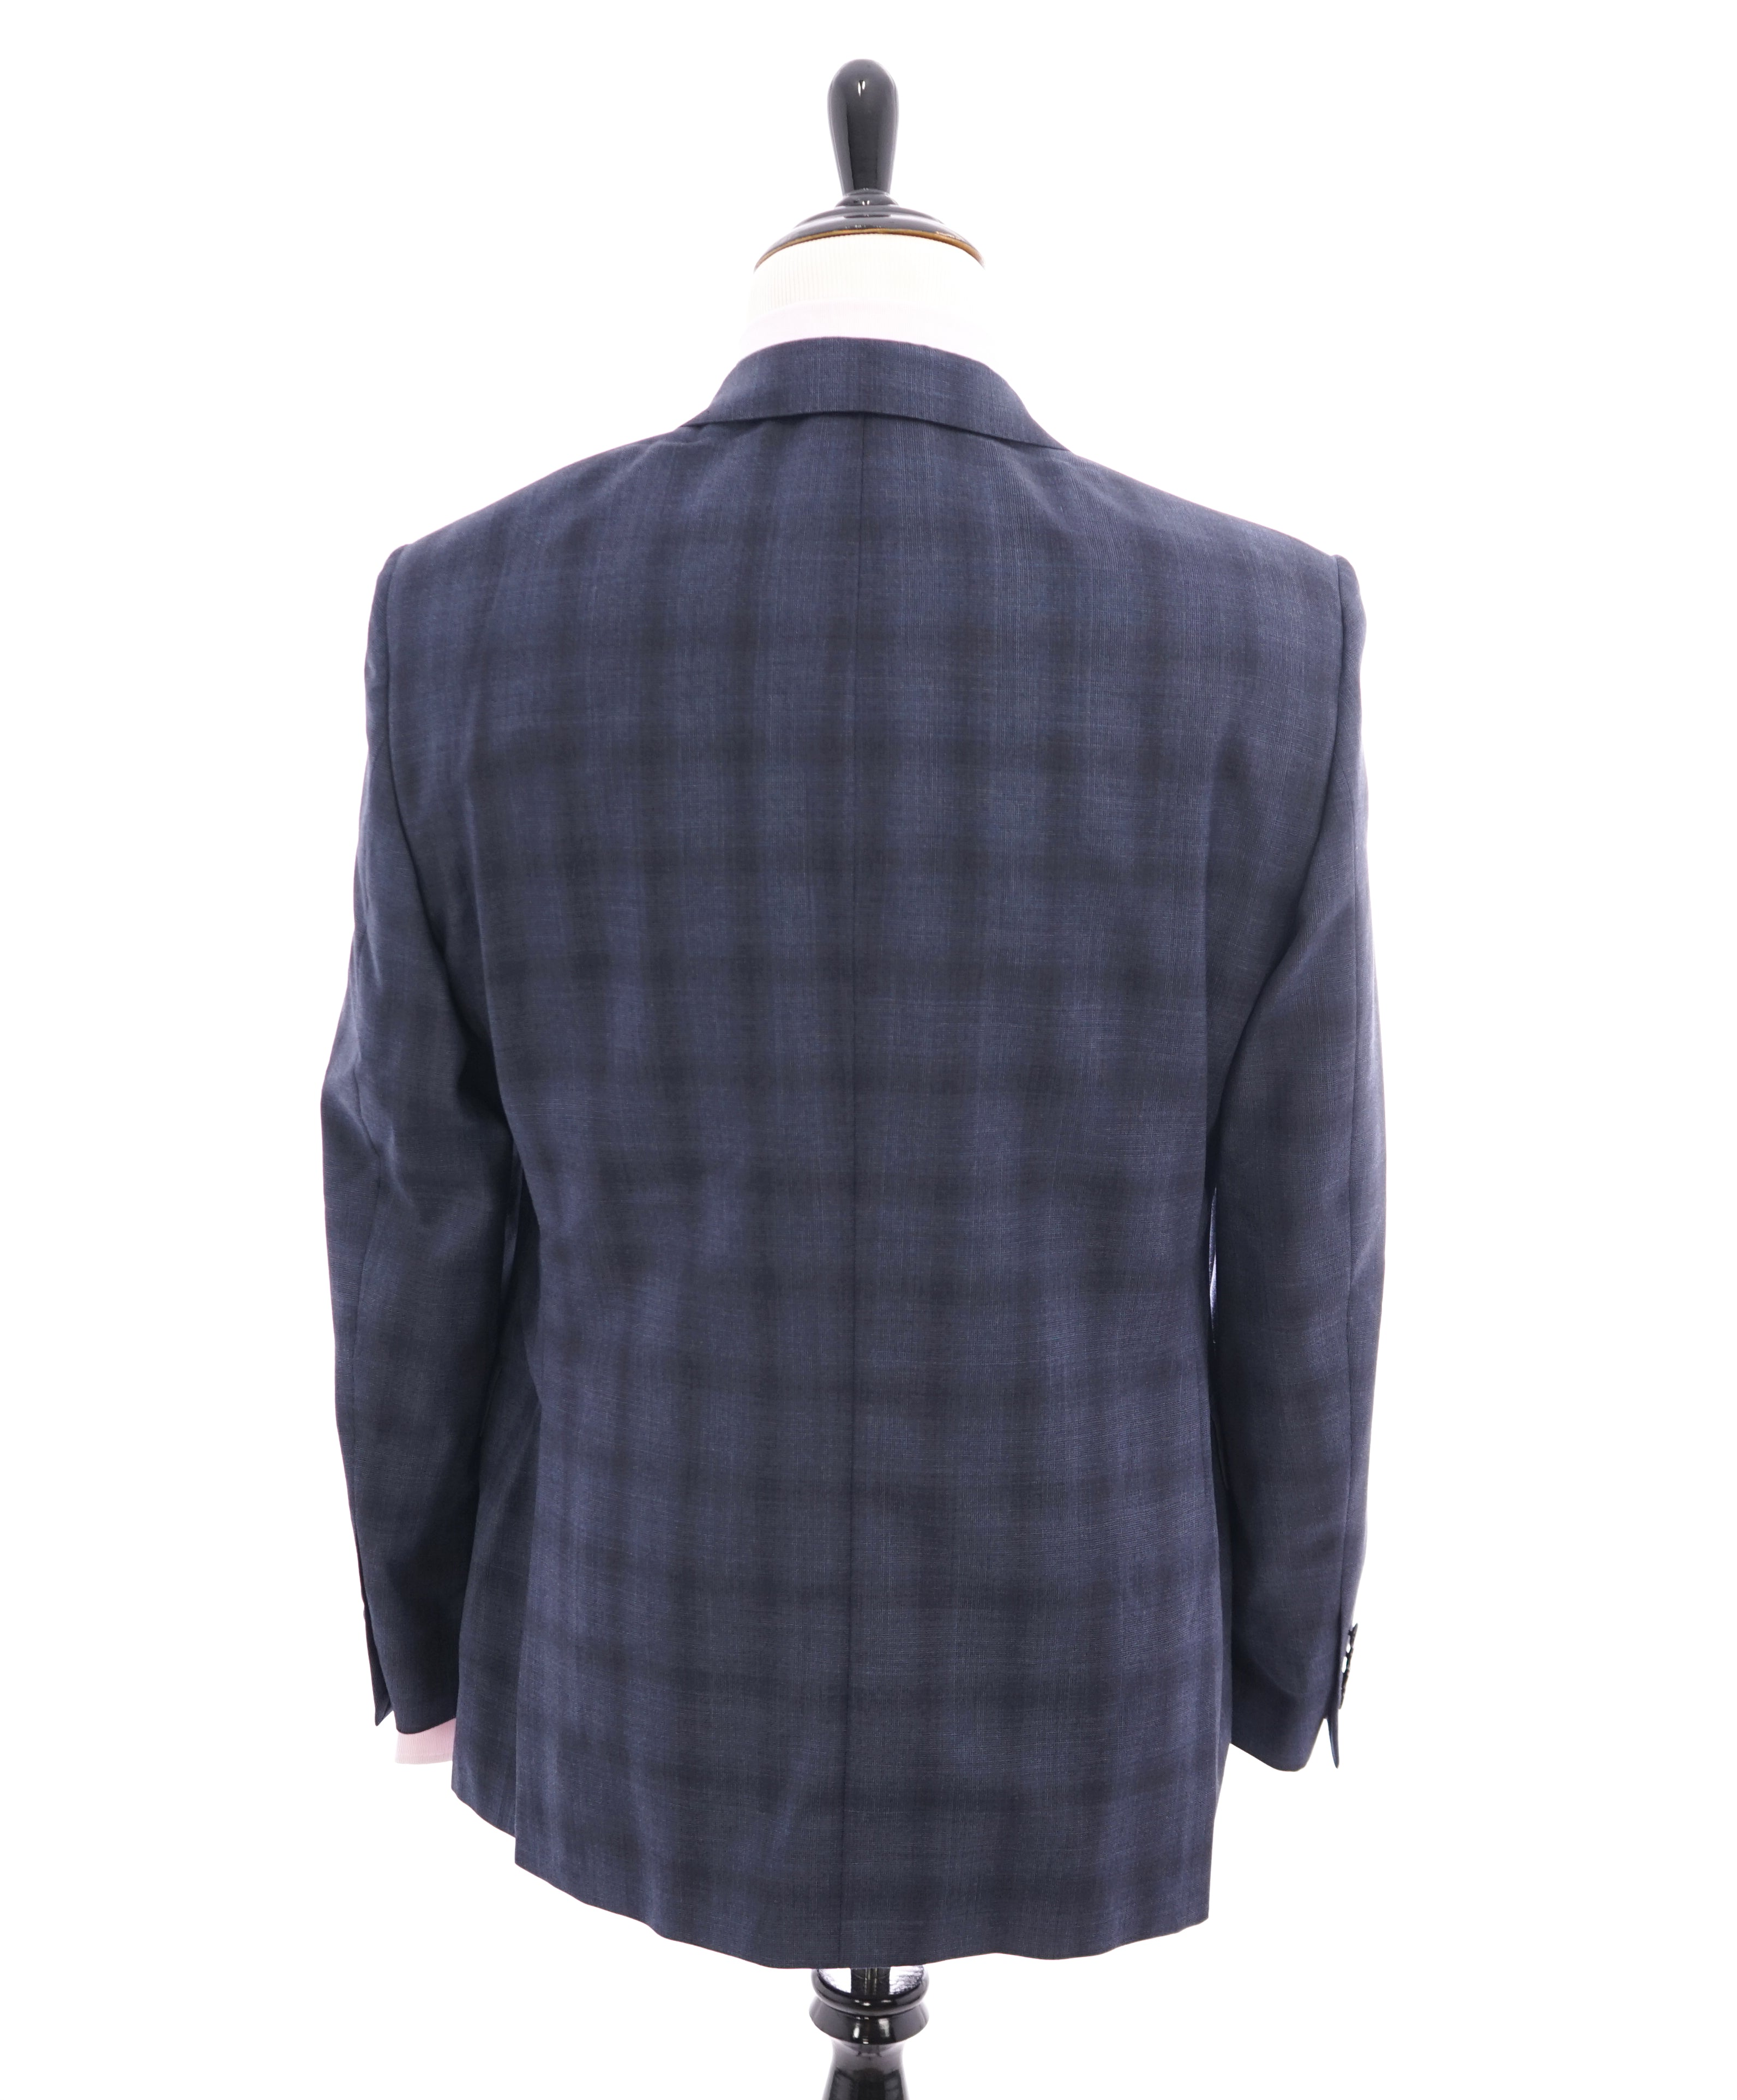 SAMUELSOHN  - Notch Lapel Super 130's Bold Blue Check Plaid Suit -  42R